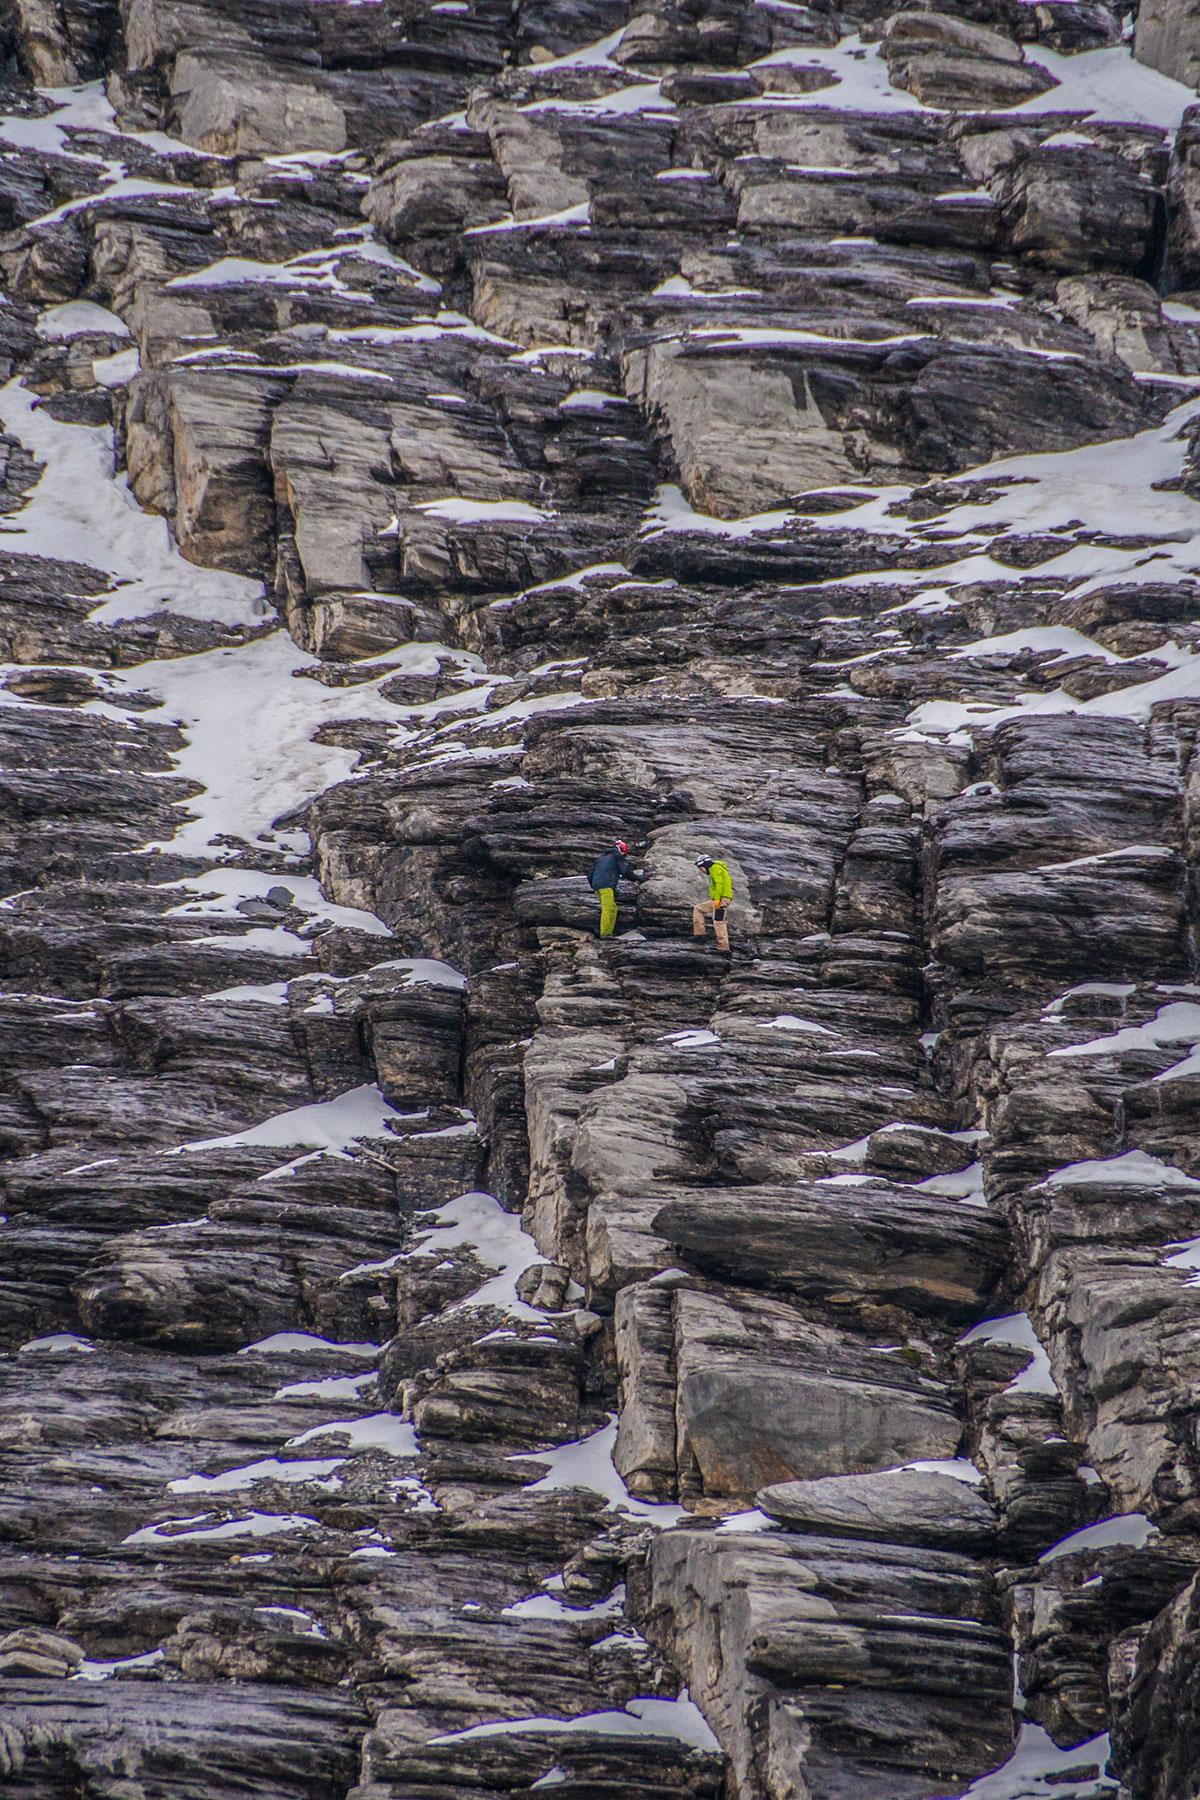 Eiger north face - ascent to the climb